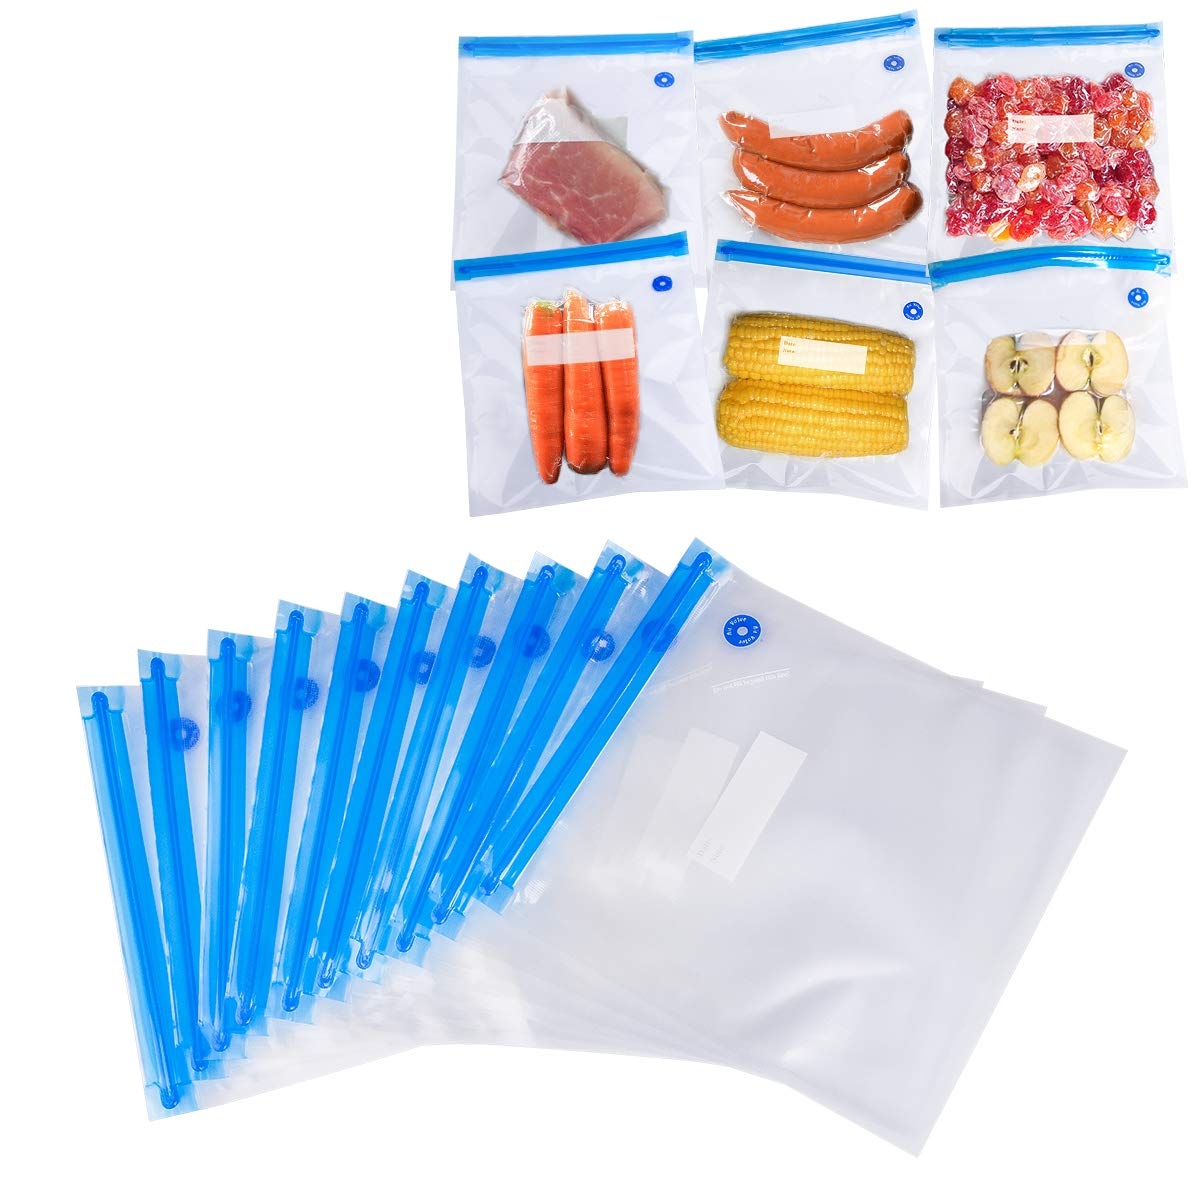 [10 Bags] Sous Vide Bags for Immersion Circulator, ACRATO Food Storage Bags BPA-Free Reusable Food Zipper Bags with 2 Sealing Clips, Easy to Use &Environmental-friendly